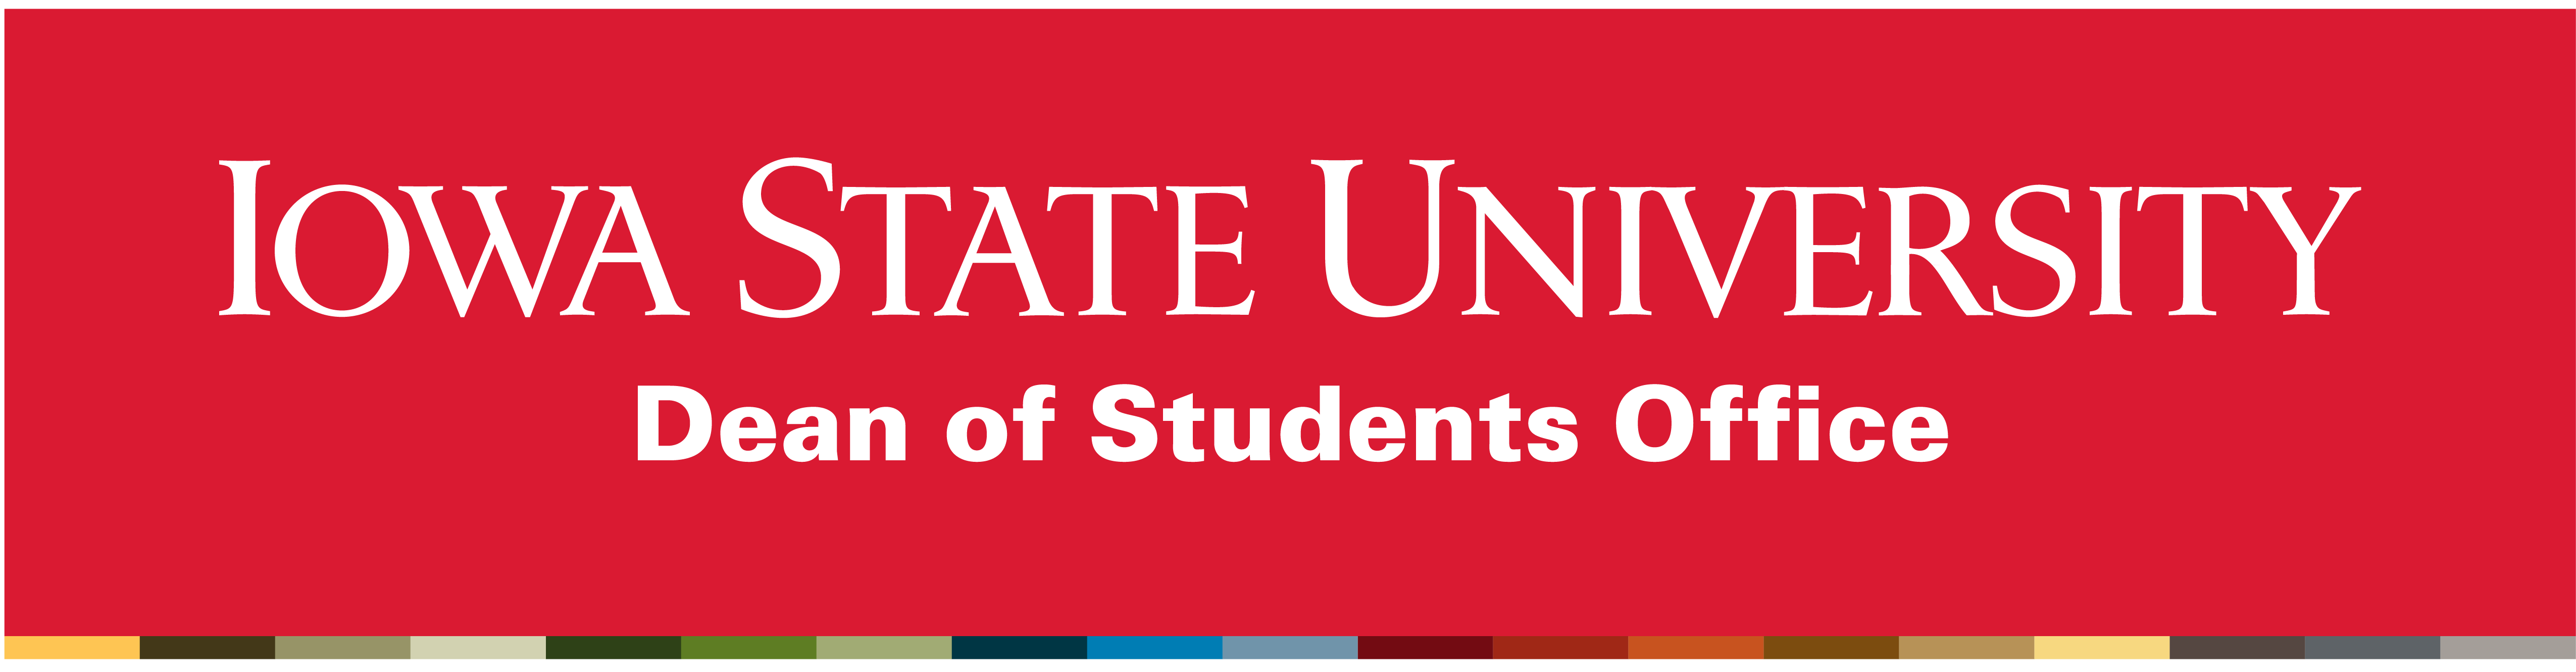 Dean of Students Office wordmark